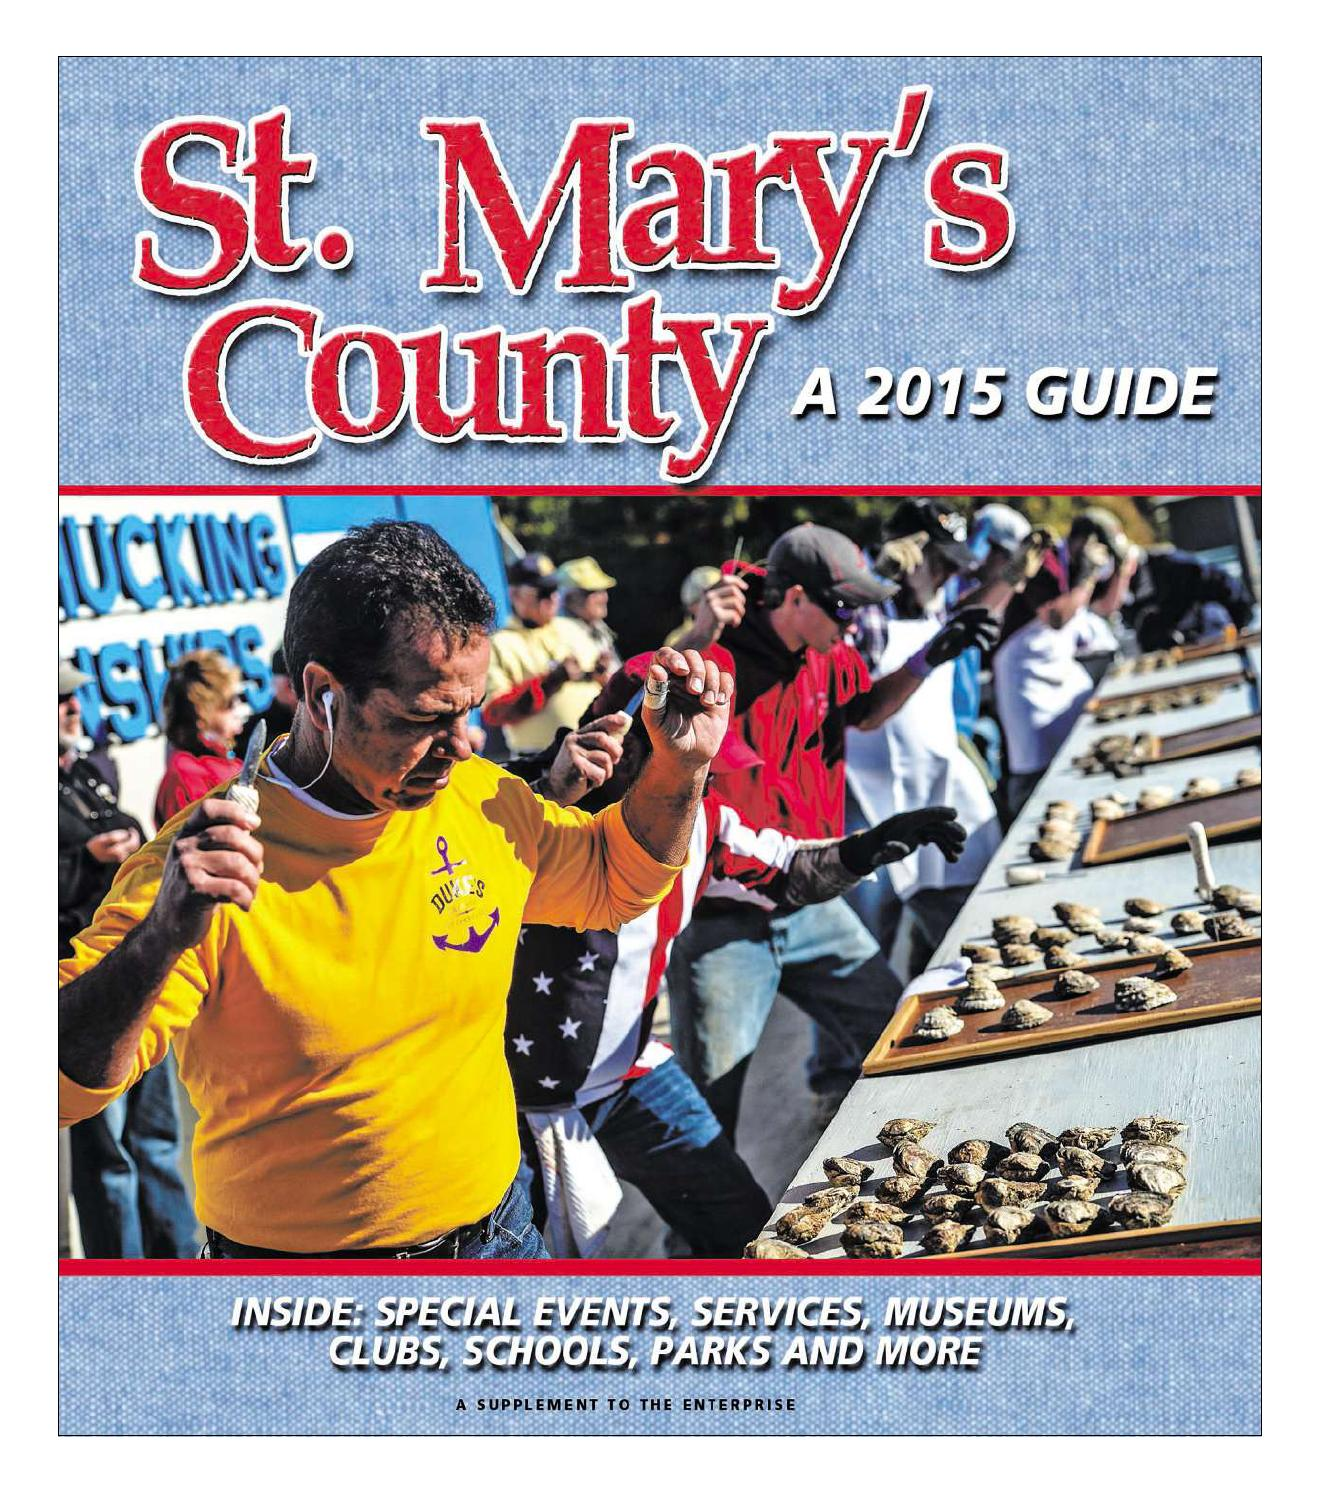 d58deae9c1d7 Stmarys newcomers 032715 by SoMDNews - issuu